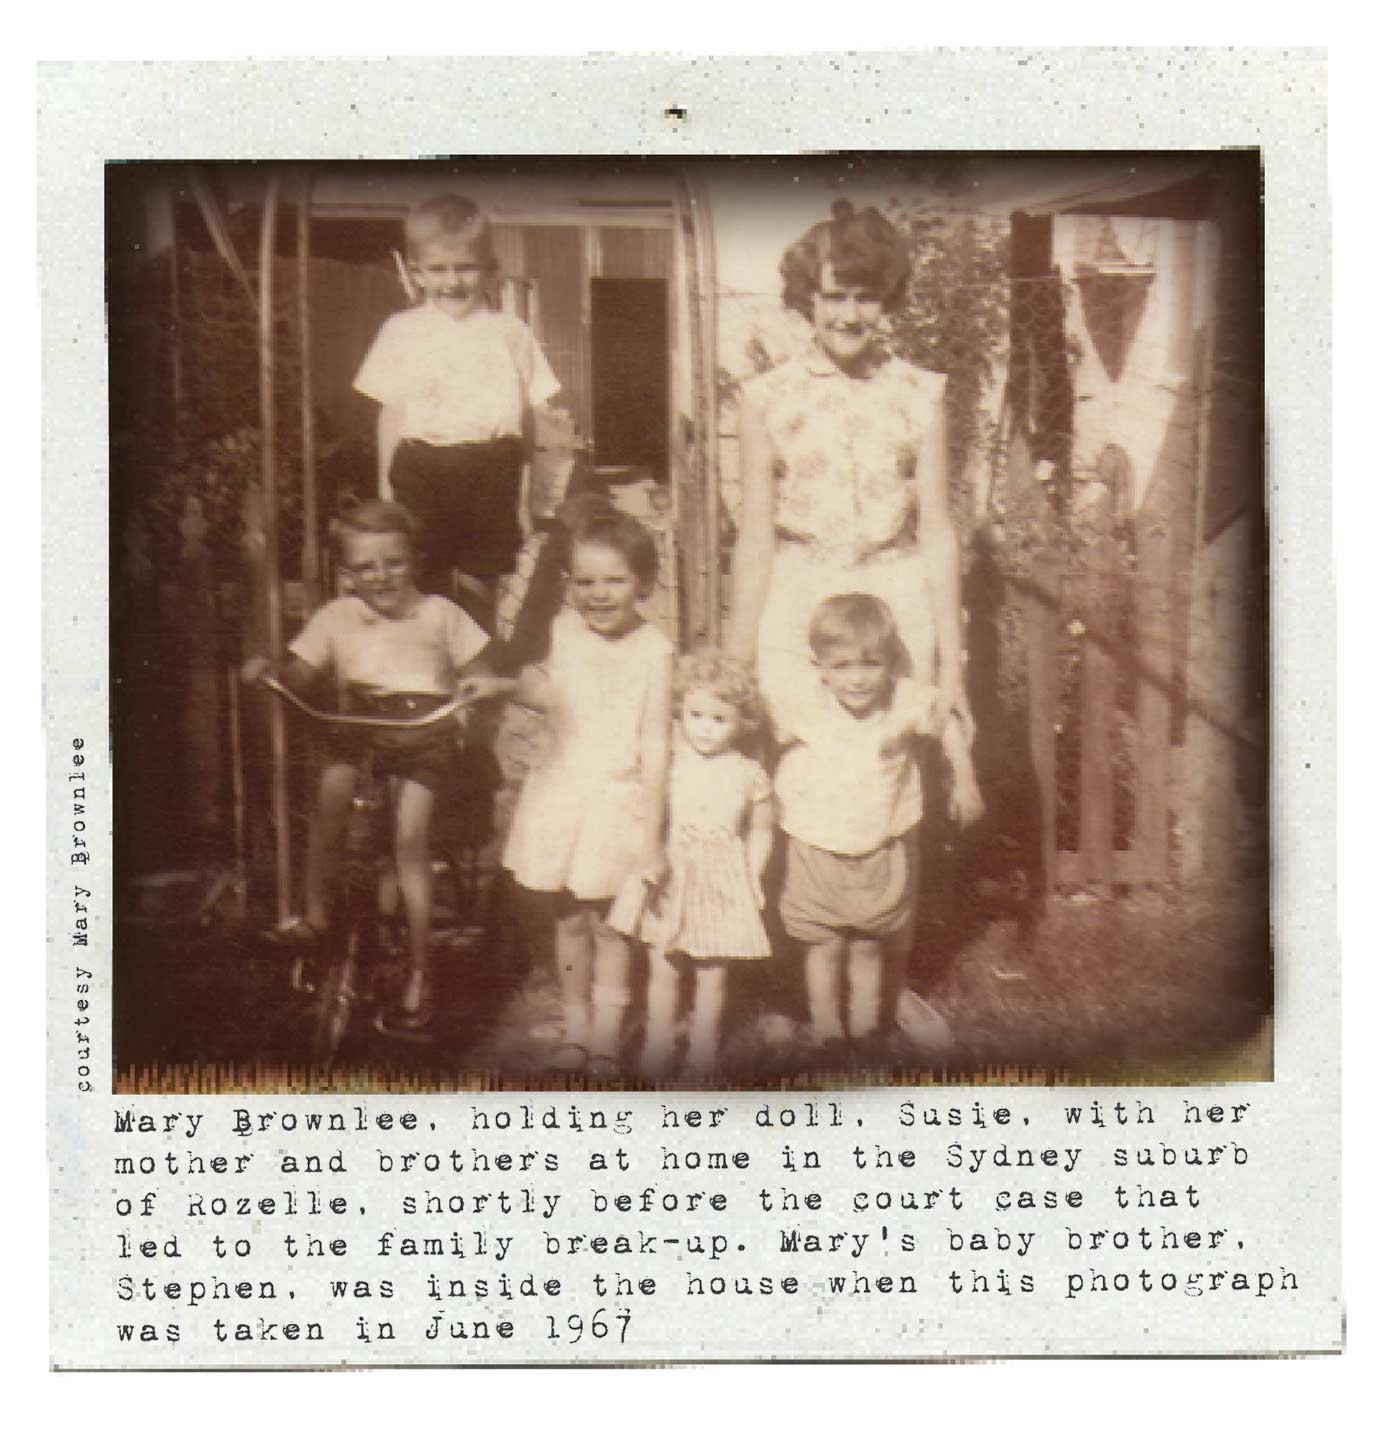 Black and white Polaroid photograph showing a young woman with three small boys and a small girl outside a house. They are positioned in a group facing the camera and all smiling. One the boys is sitting on a tricycle and the girl is holding a large doll. Typewritten text underneath reads: 'Mary Brownlee, holding her doll, Susie, with her mother and brothers at home in the Sydney suburb of Rozelle, shortly before the court case that led to their family break-up. Mary's baby brother, Stephen, was inside the house when this photograph was taken in June 1967'. In smaller text, on the left-hand side of the image, in a vertical direction, reads: 'Courtesy Mary Brownlee'. - click to view larger image